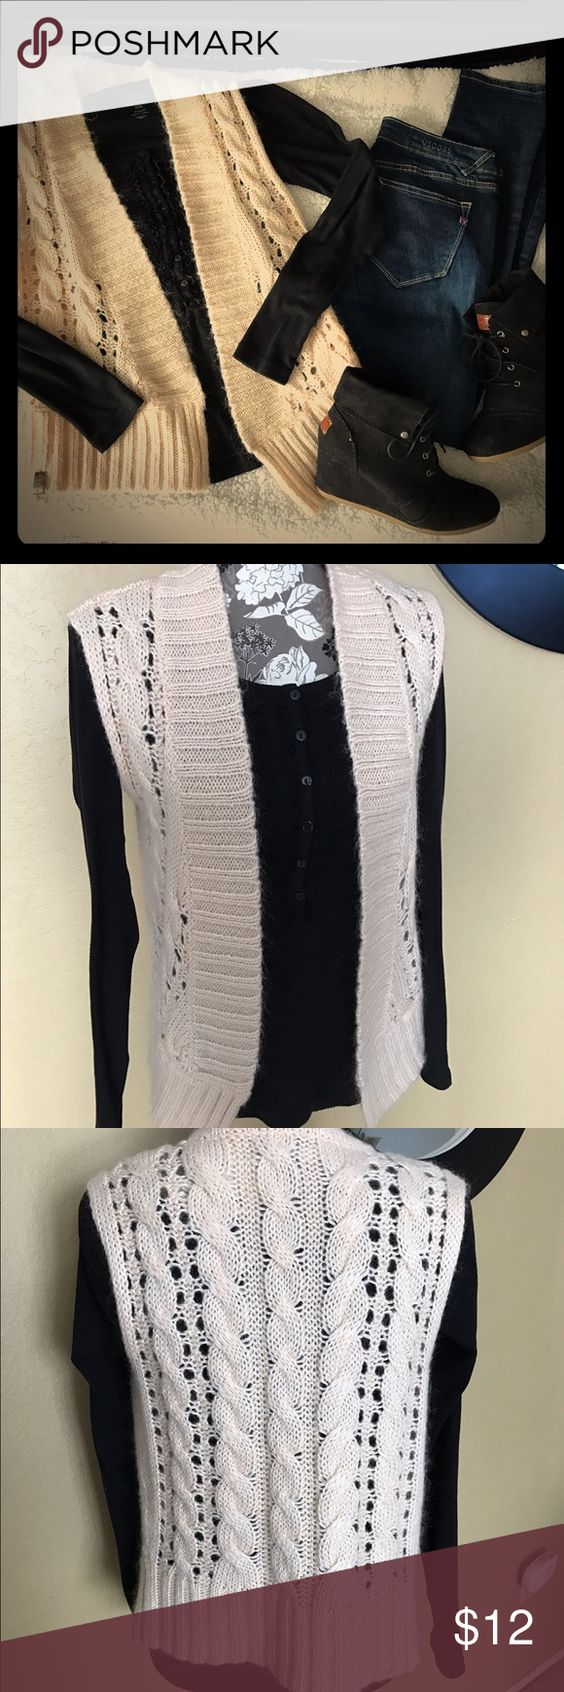 Light pink/cream sweater vest Very cute vest. It is a pale pink ...